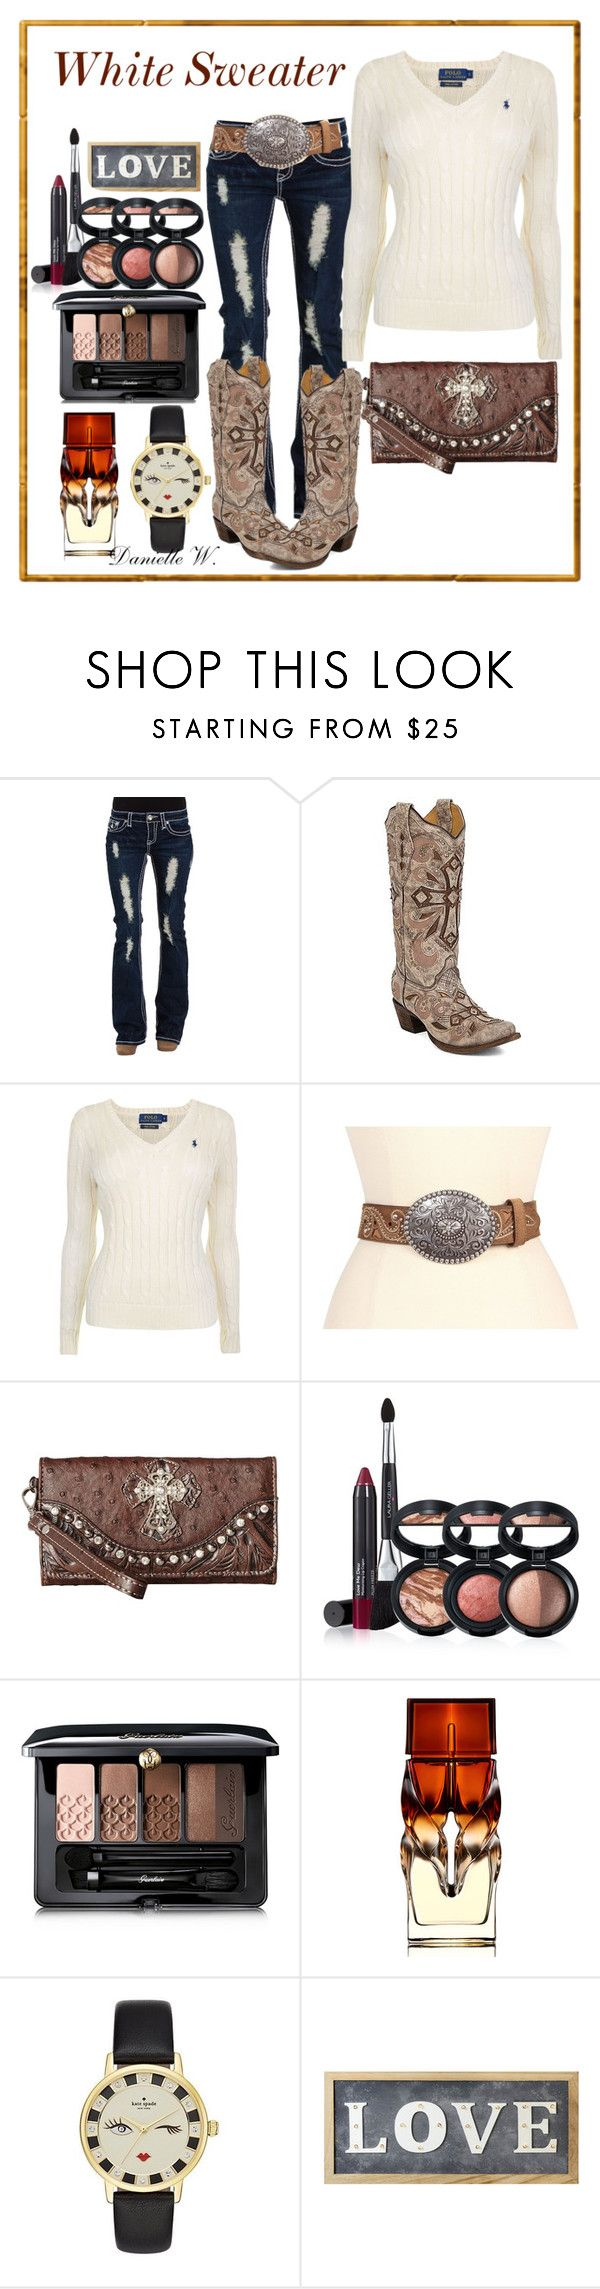 """""""#White Sweater"""" by willfongdanielle ❤ liked on Polyvore featuring Corral, Polo Ralph Lauren, Justin, M&F Western, Laura Geller, Guerlain, Christian Louboutin, Kate Spade and Parlane"""